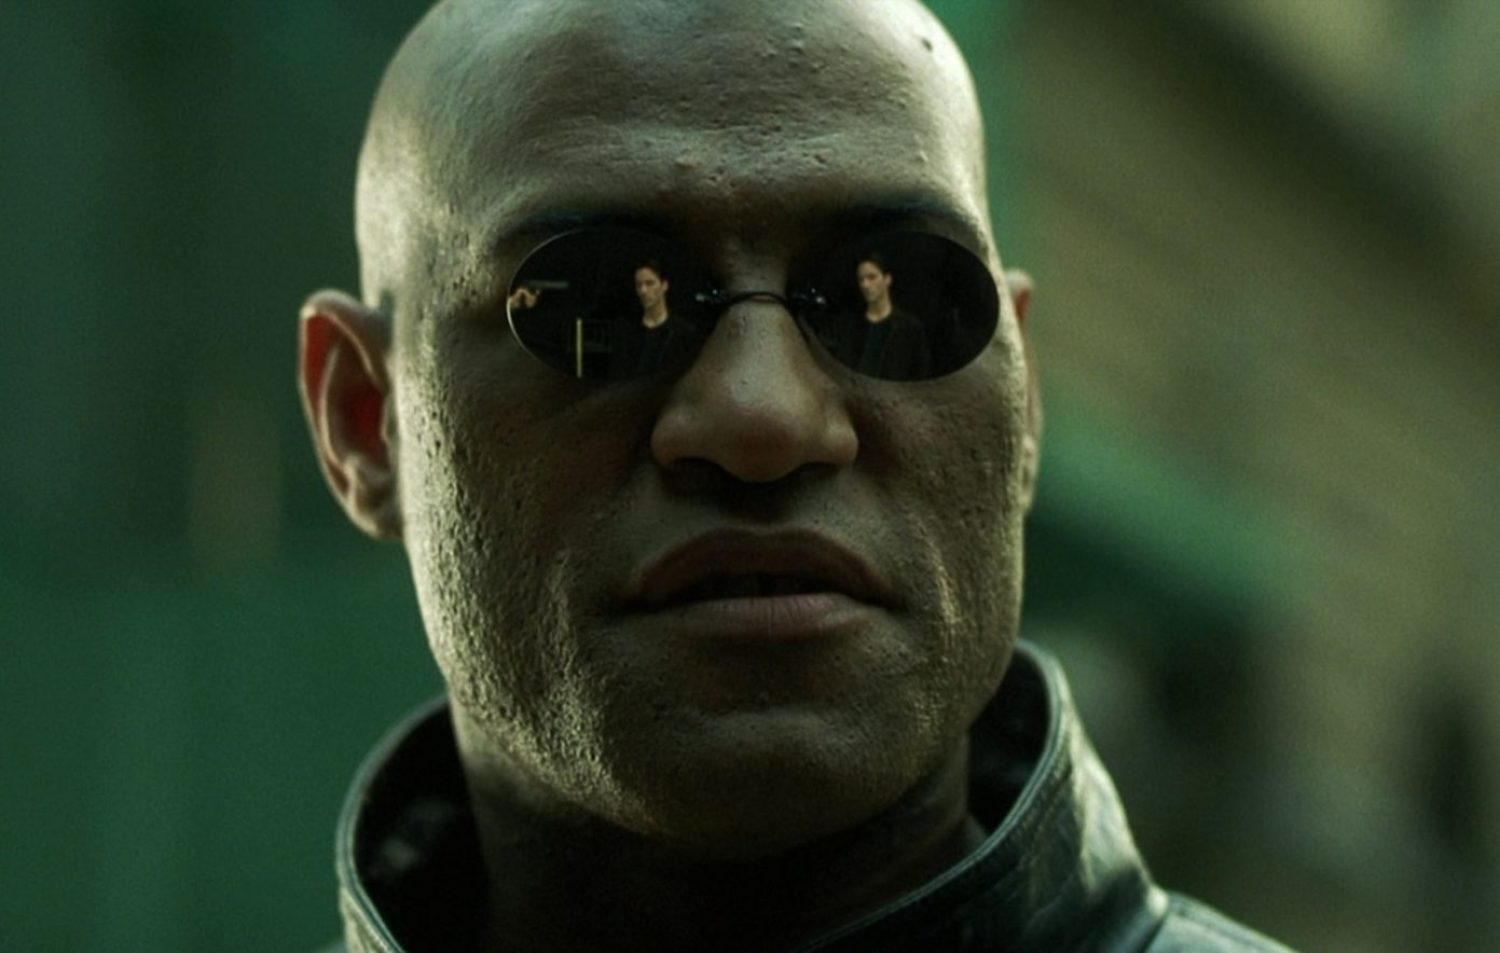 The title of 'The Matrix 4' has reportedly been revealed